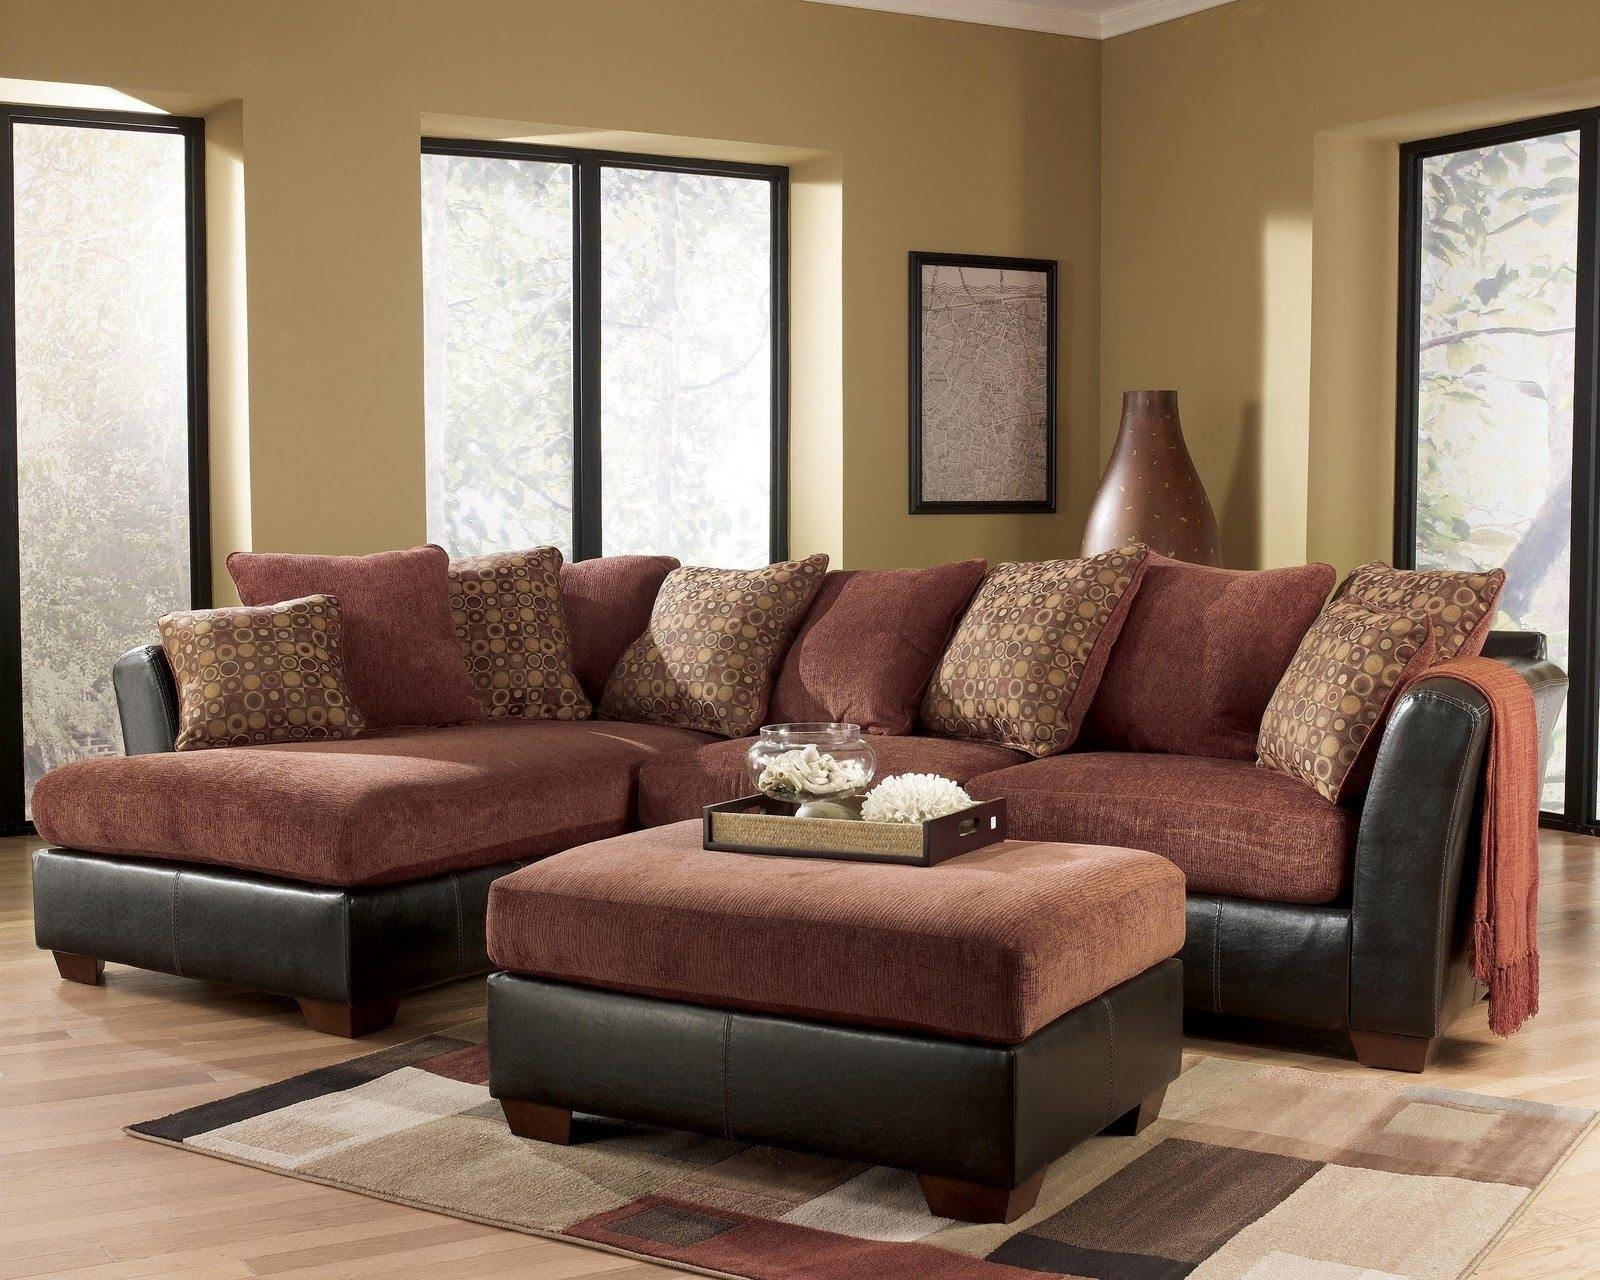 Sectional Sofa Ashley Furniture 53 With Sectional Sofa Ashley for Ashley Furniture Brown Corduroy Sectional Sofas (Image 10 of 15)